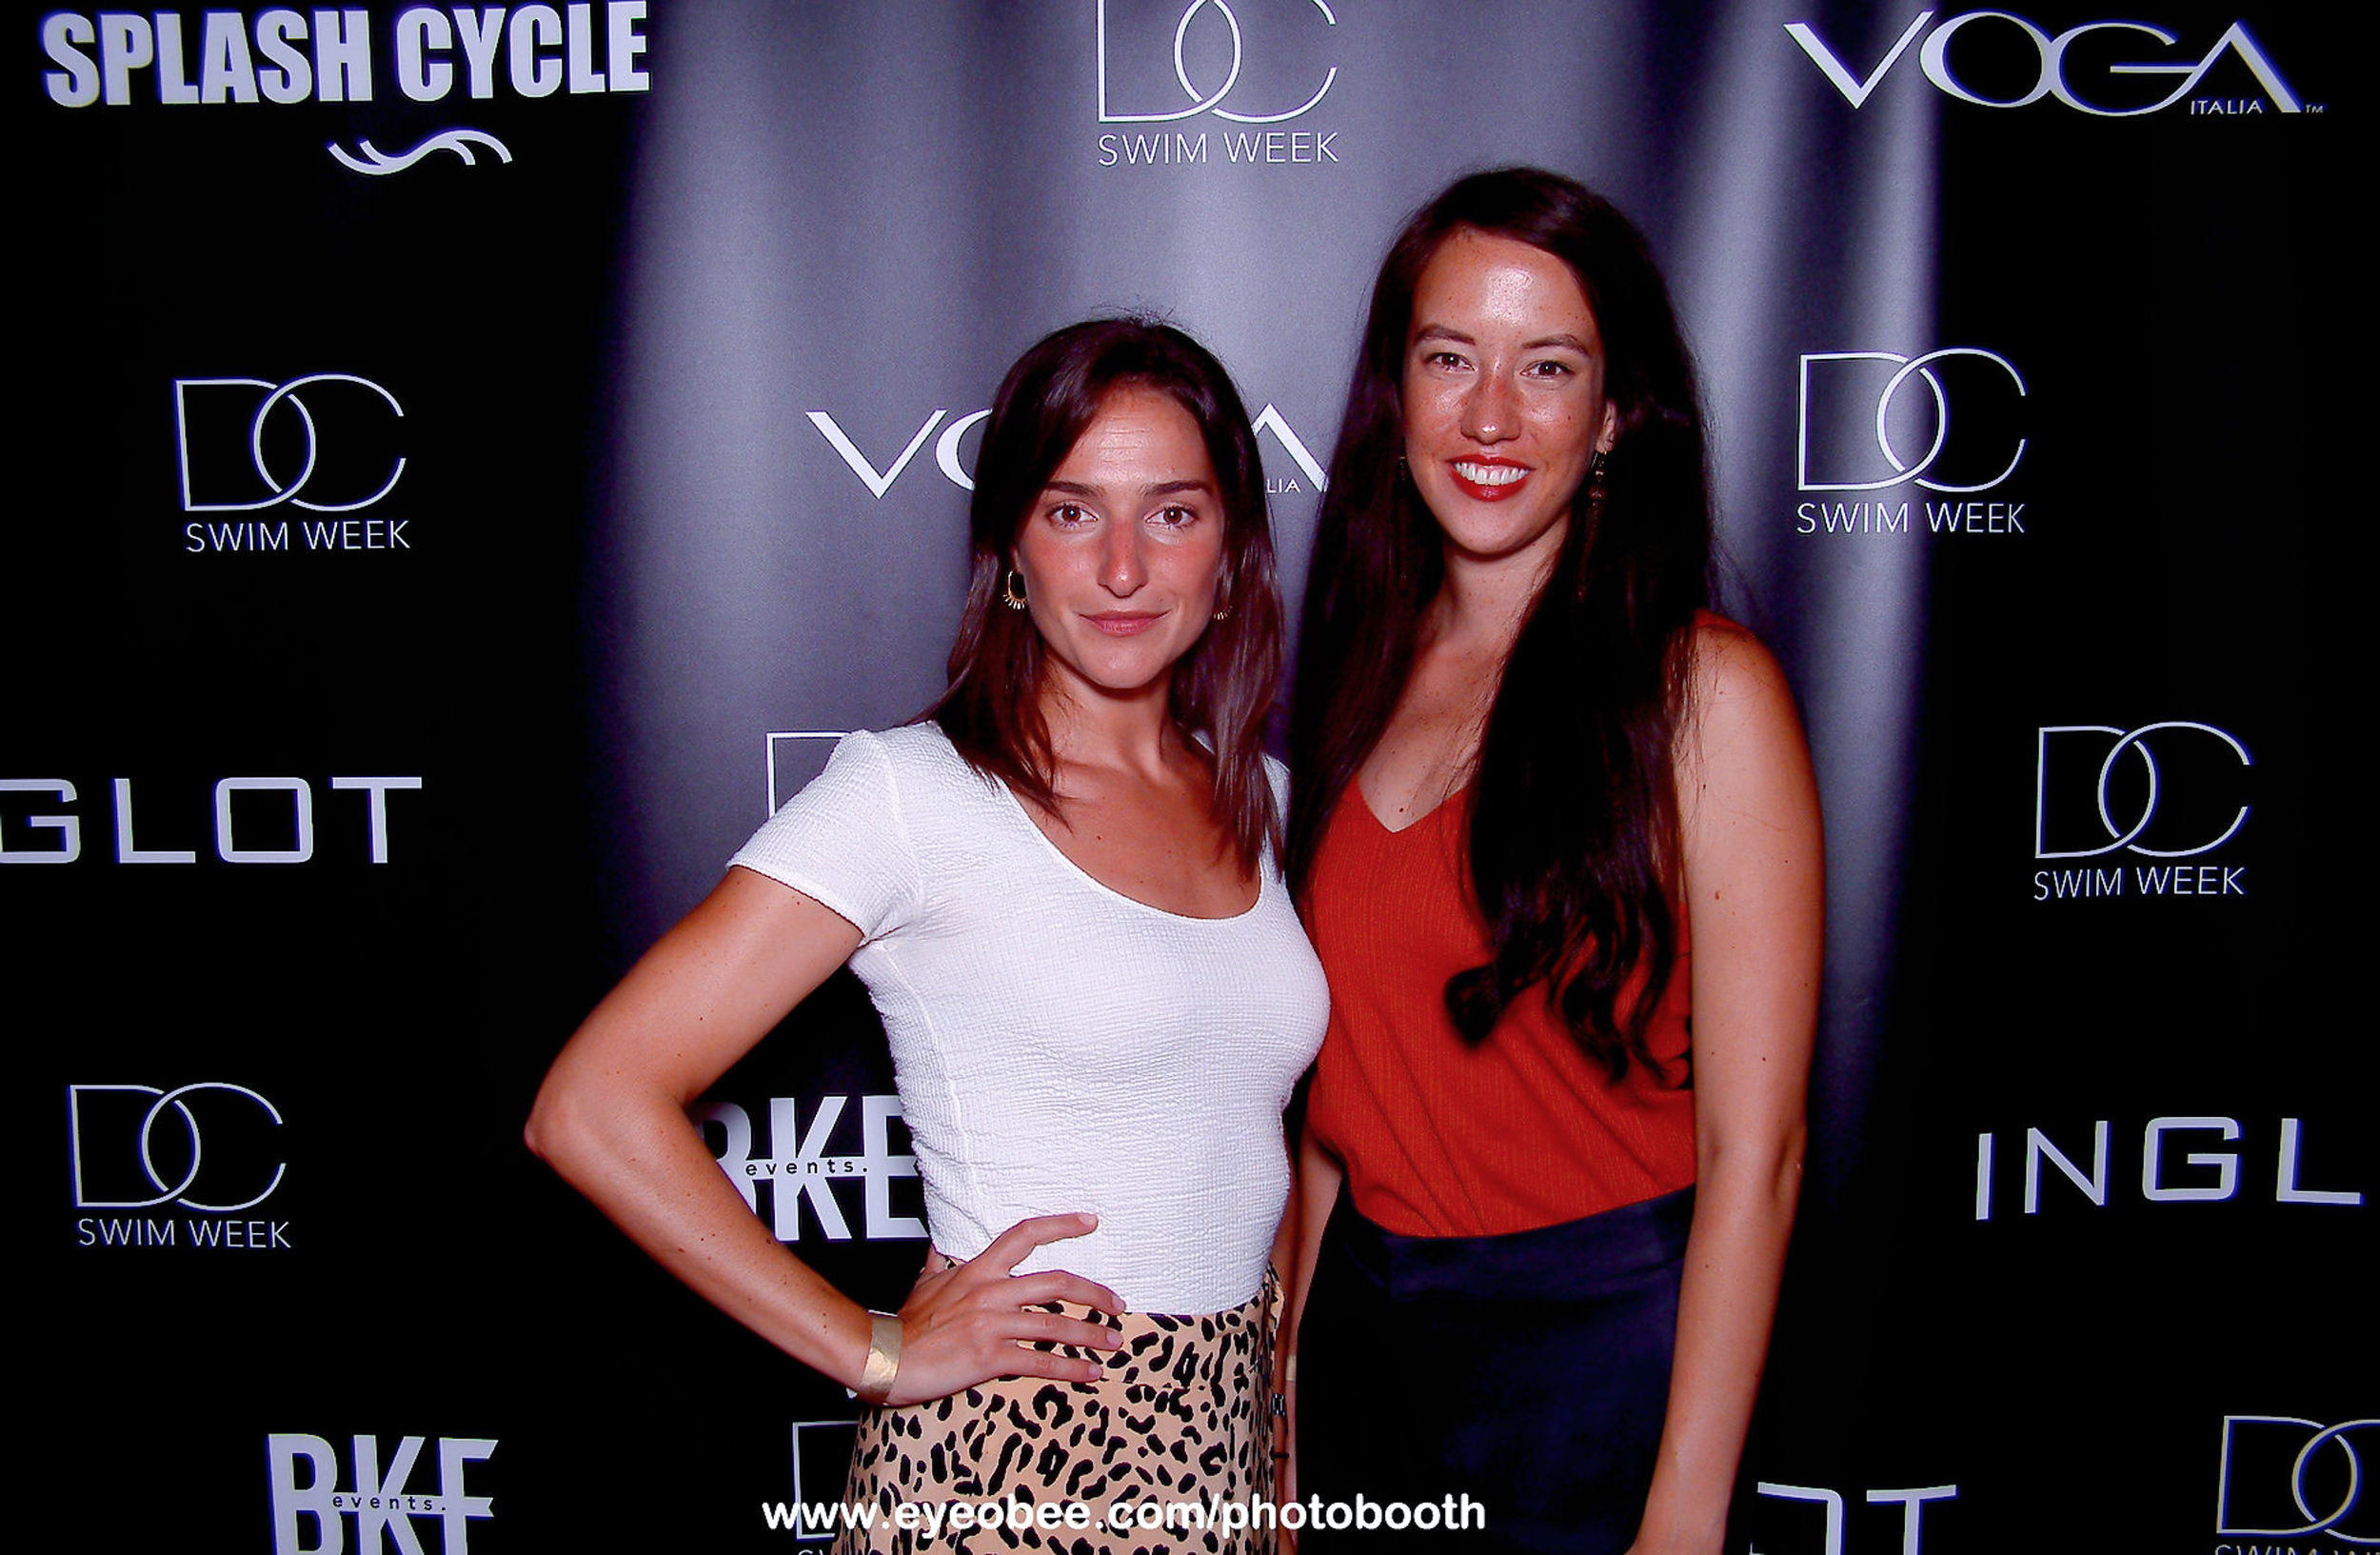 eyeobee PhotoBooth - DCSW-414.jpg